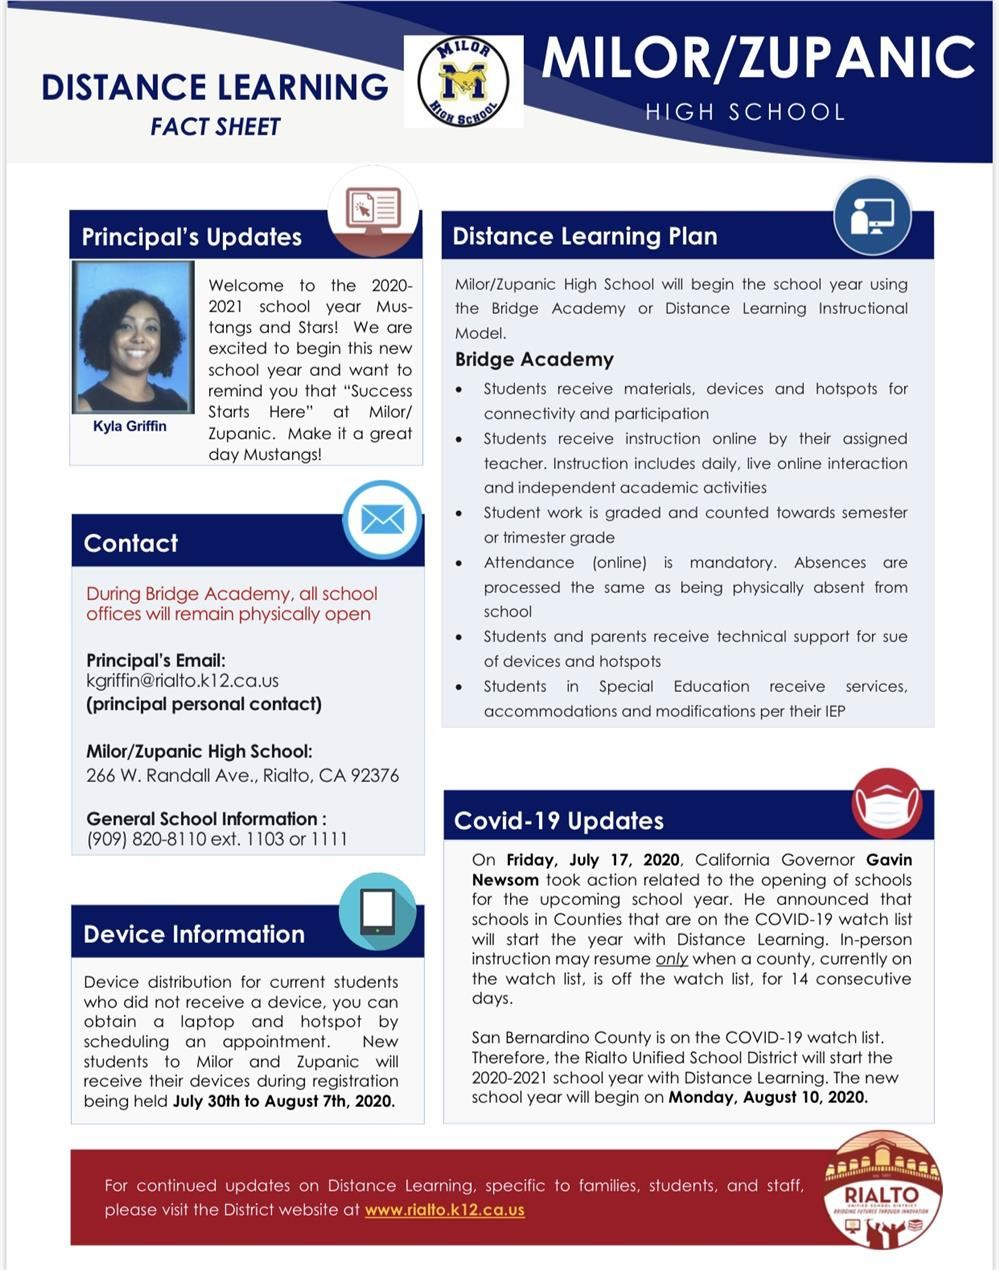 Distant Learning fact sheet. What you need to know regarding Distant Learning.